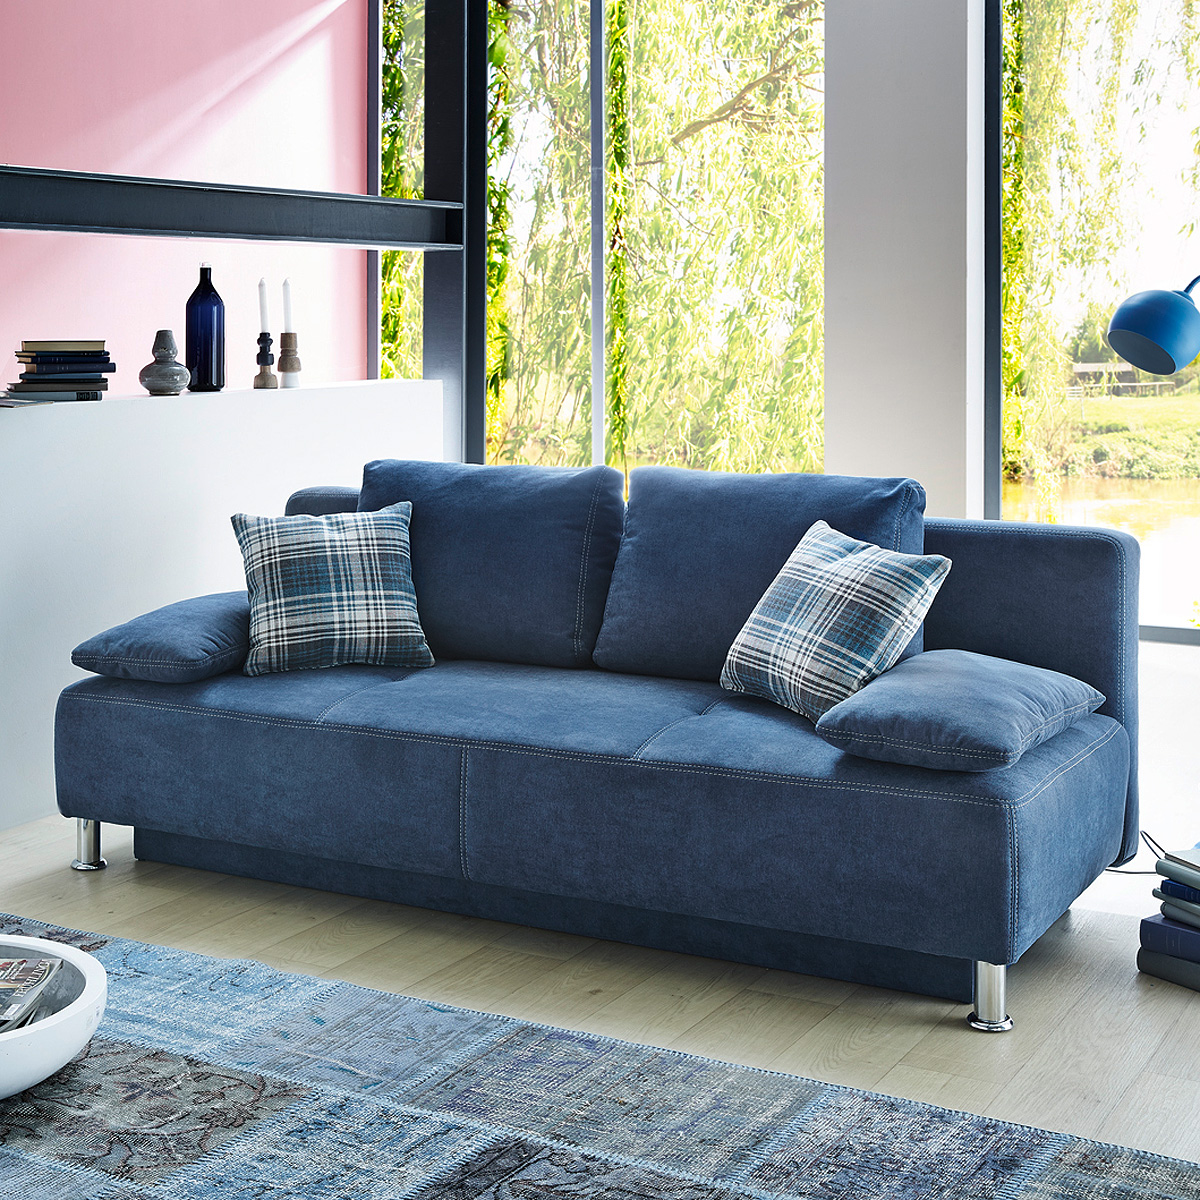 funktionssofa kairo schlafsofa sofa verwandlungssofa in blau mit hebebeschlag ebay. Black Bedroom Furniture Sets. Home Design Ideas